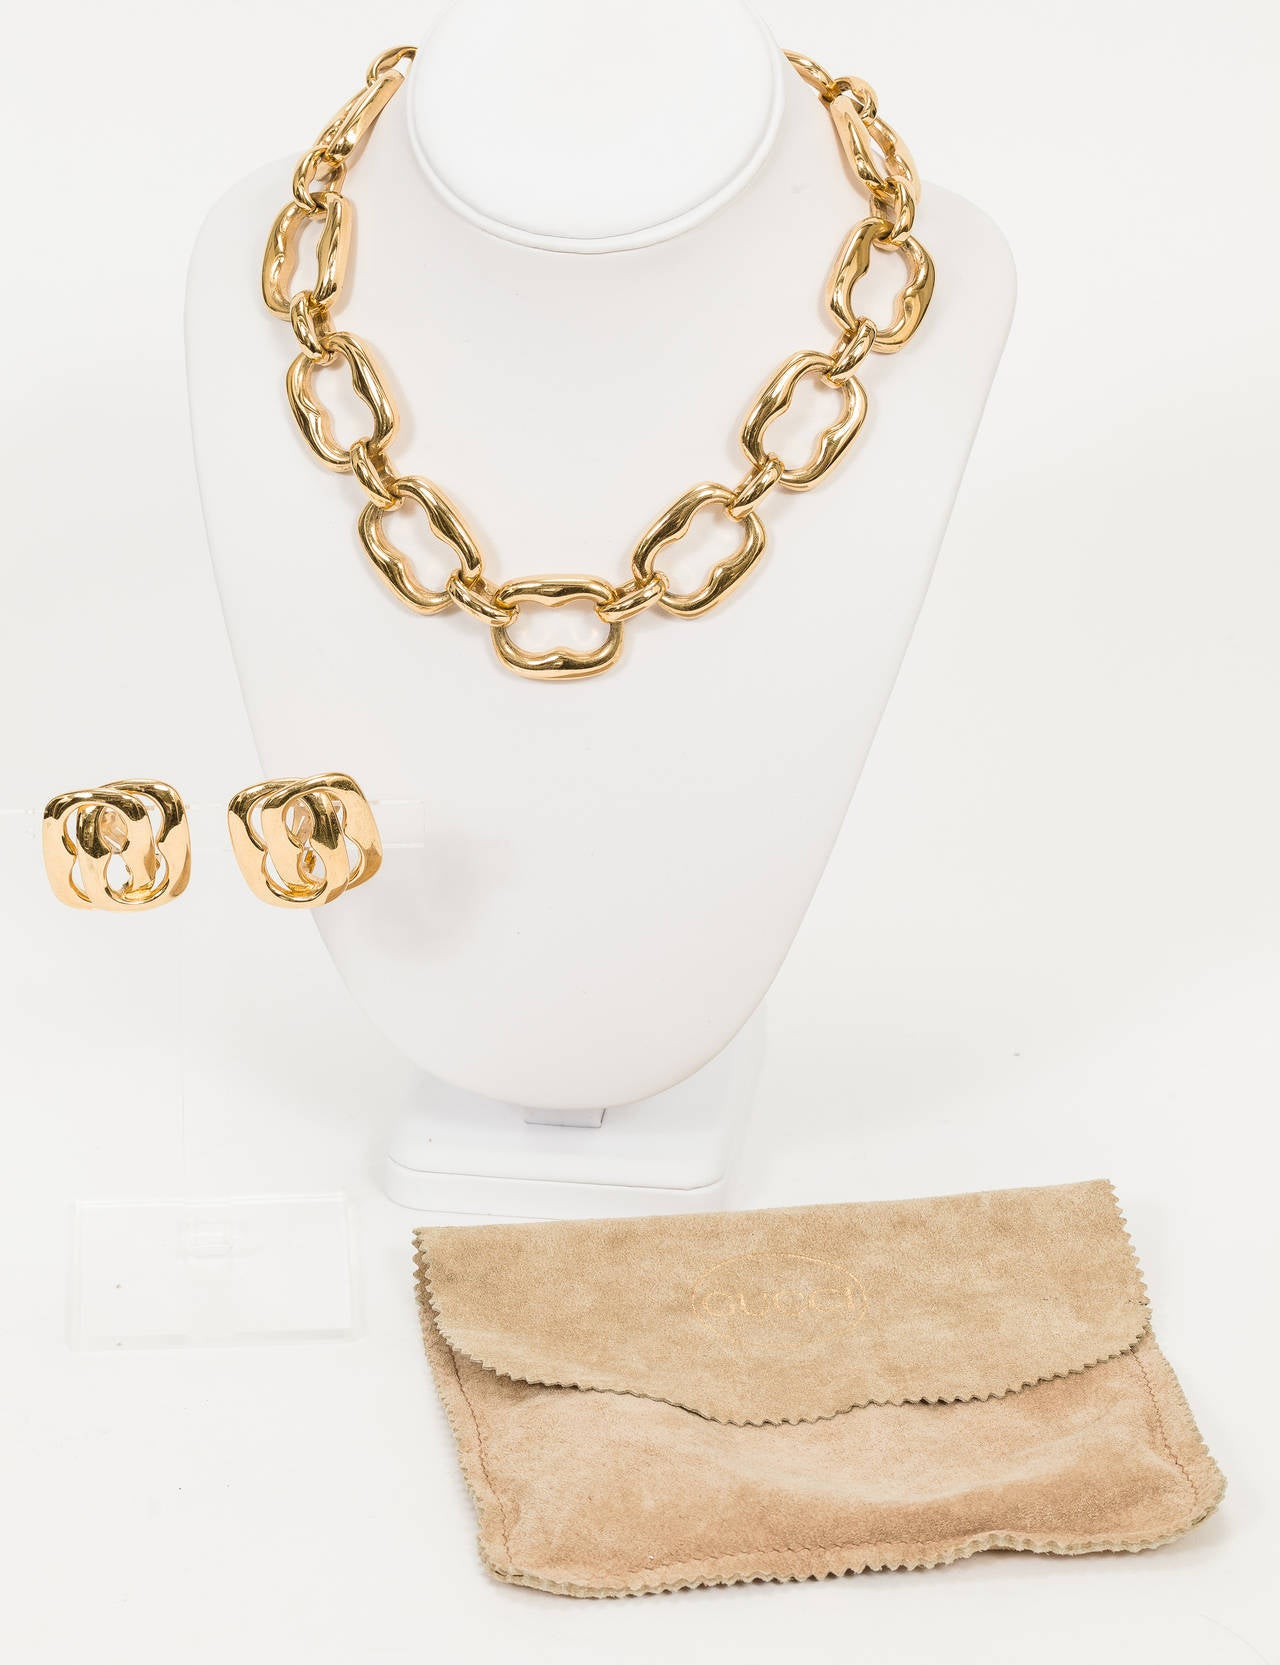 1980s Gucci Oversize Link Necklace And Earrings Set W